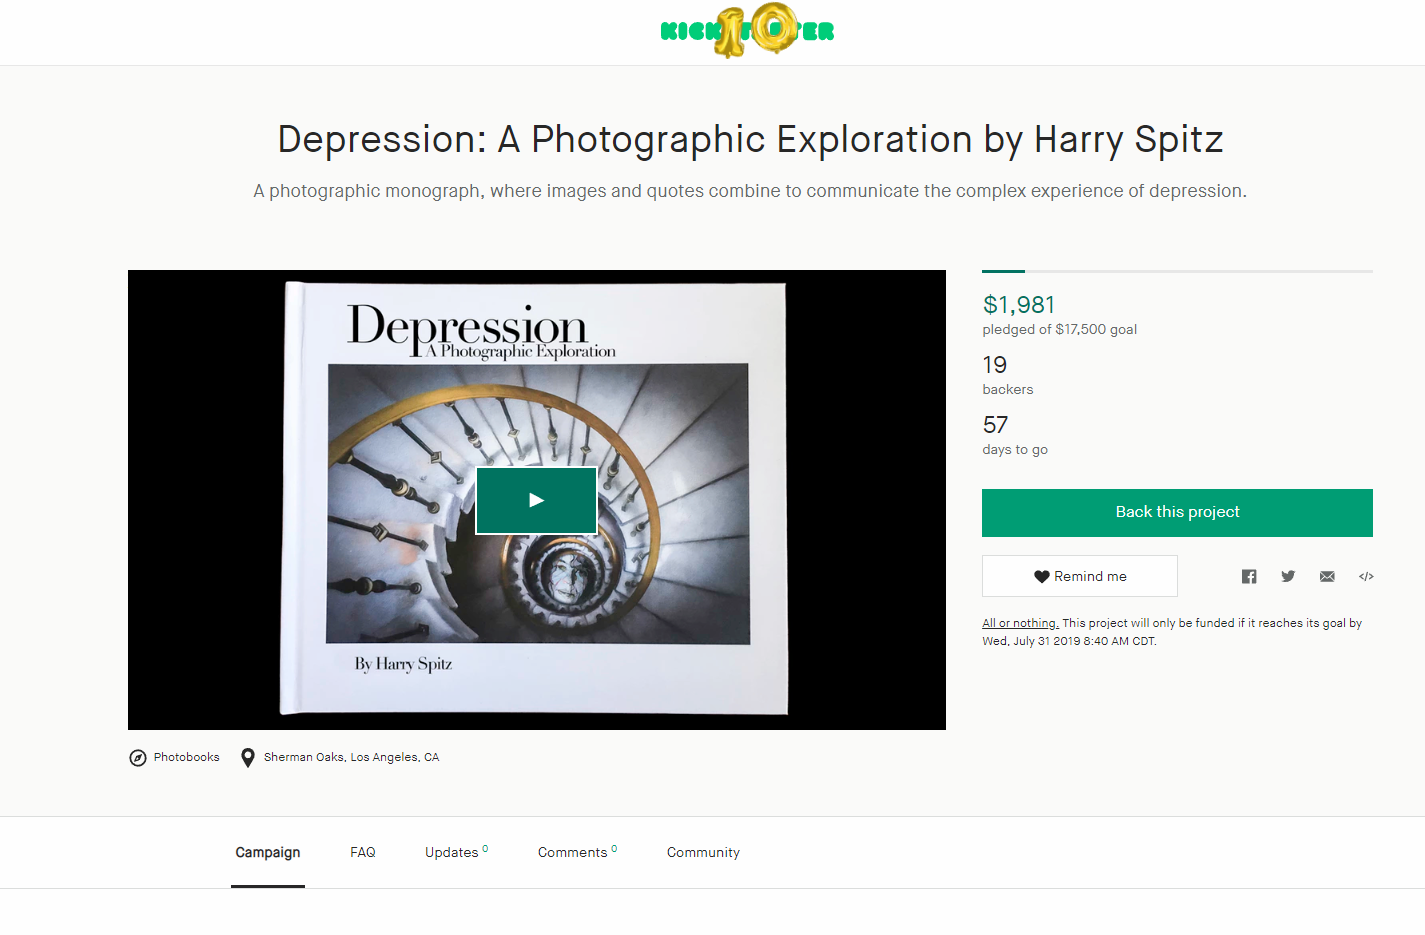 Harry Spitz's Photographic Exploration of Depression Book is Eye Opening